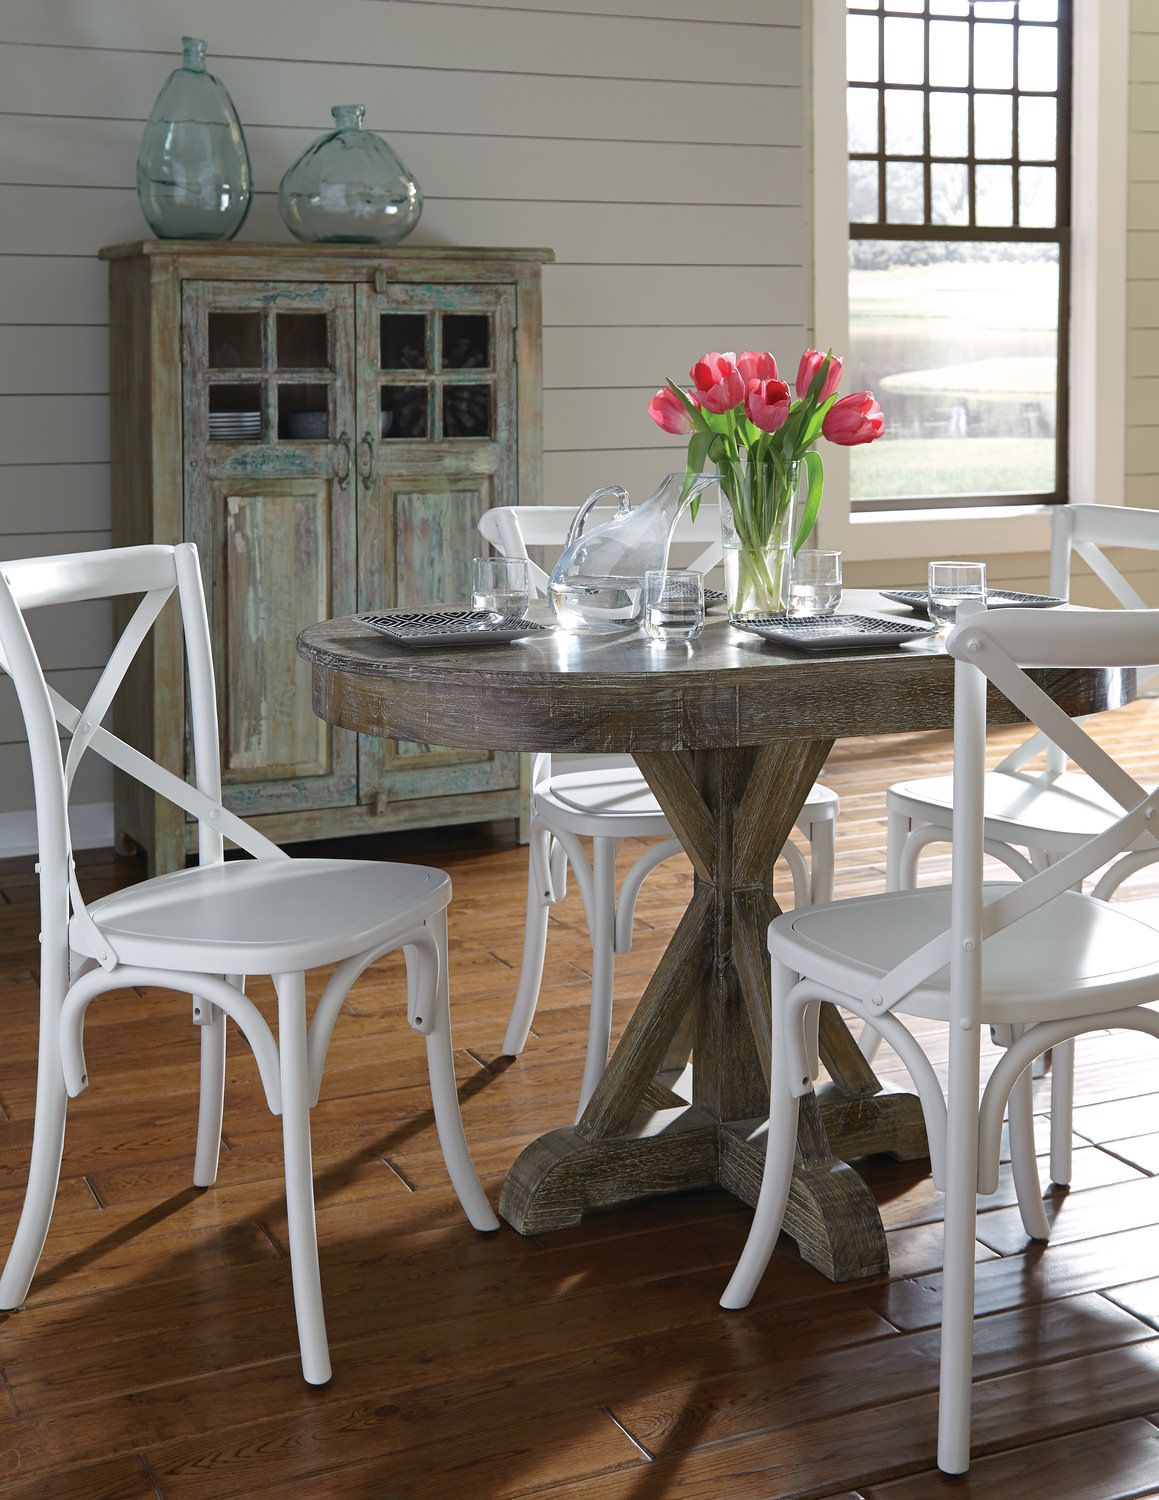 Small round kitchen table  Small table for breakfast nook  GLENVIEW UPDATES KitchenDinning